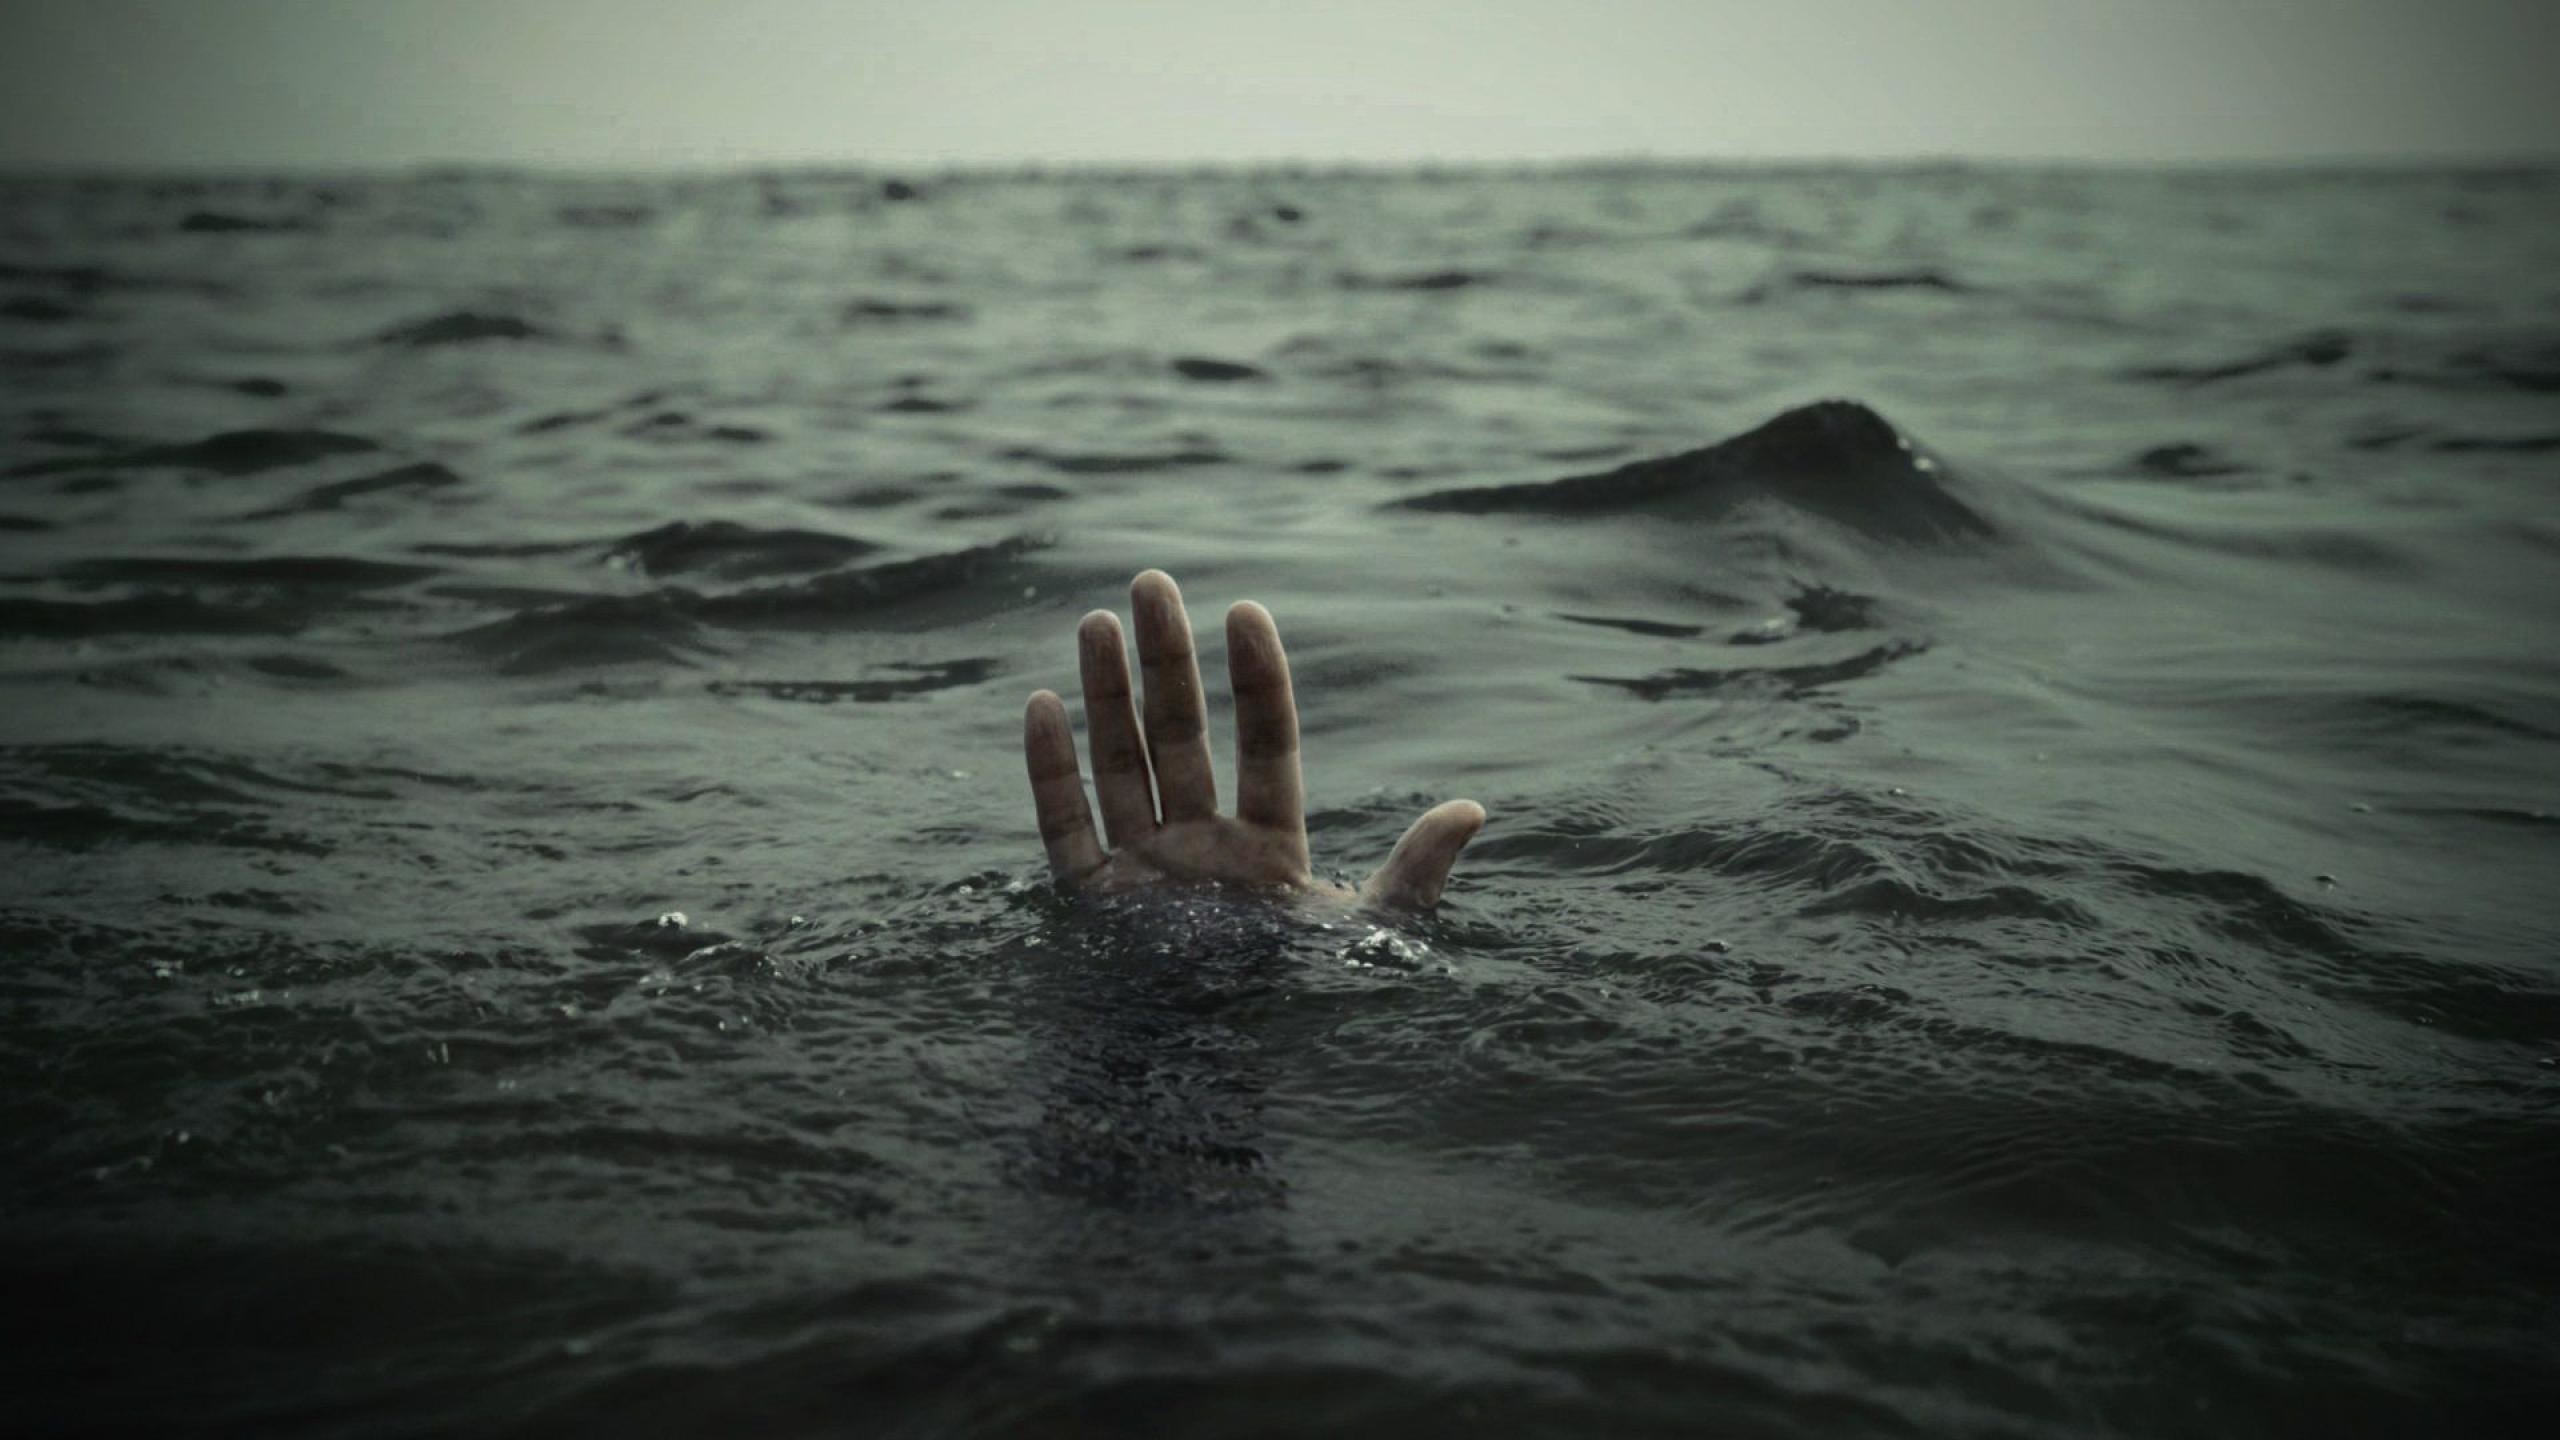 2560x1440 Drowning at sea hand above water HD Wallpaper -  http://www.hdwallpaperuniverse.com/drowning-sea-hand-water-hd-wallpaper/ |  HD Desktop Wallpapers | Pinterest ...